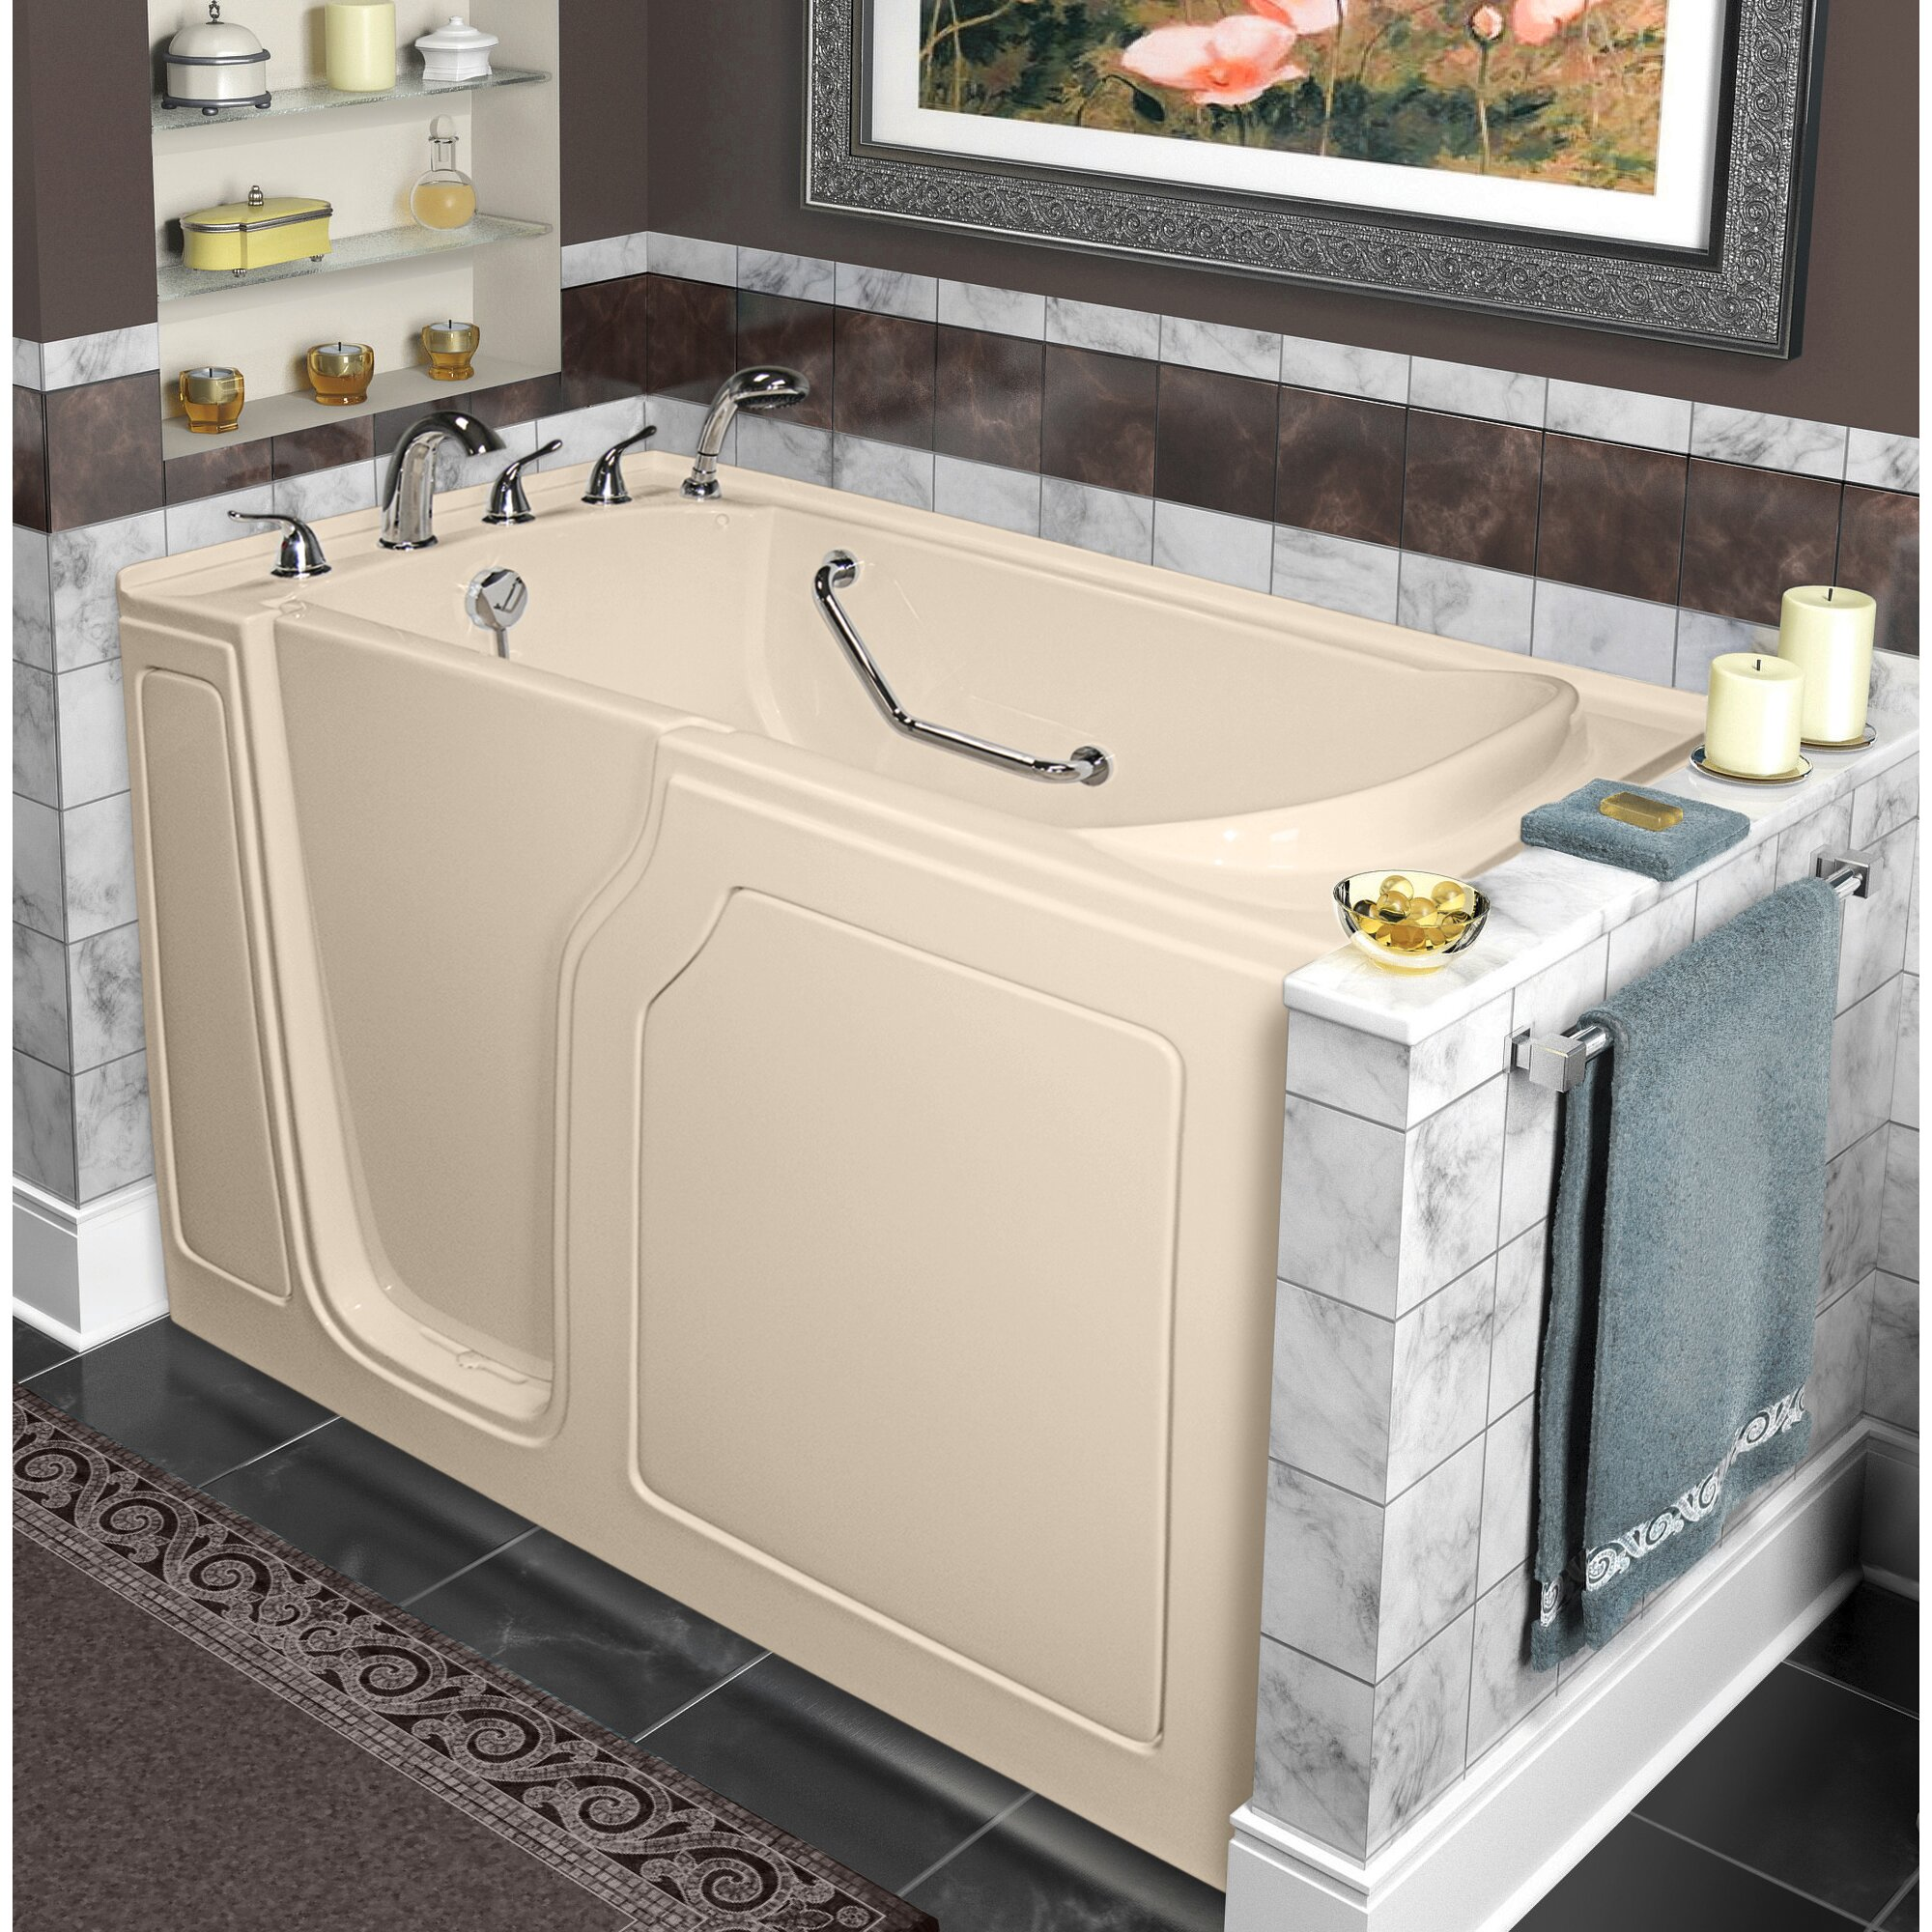 dignity 48 x 28 whirlpool and air jetted walk in bathtub wayfair. Black Bedroom Furniture Sets. Home Design Ideas